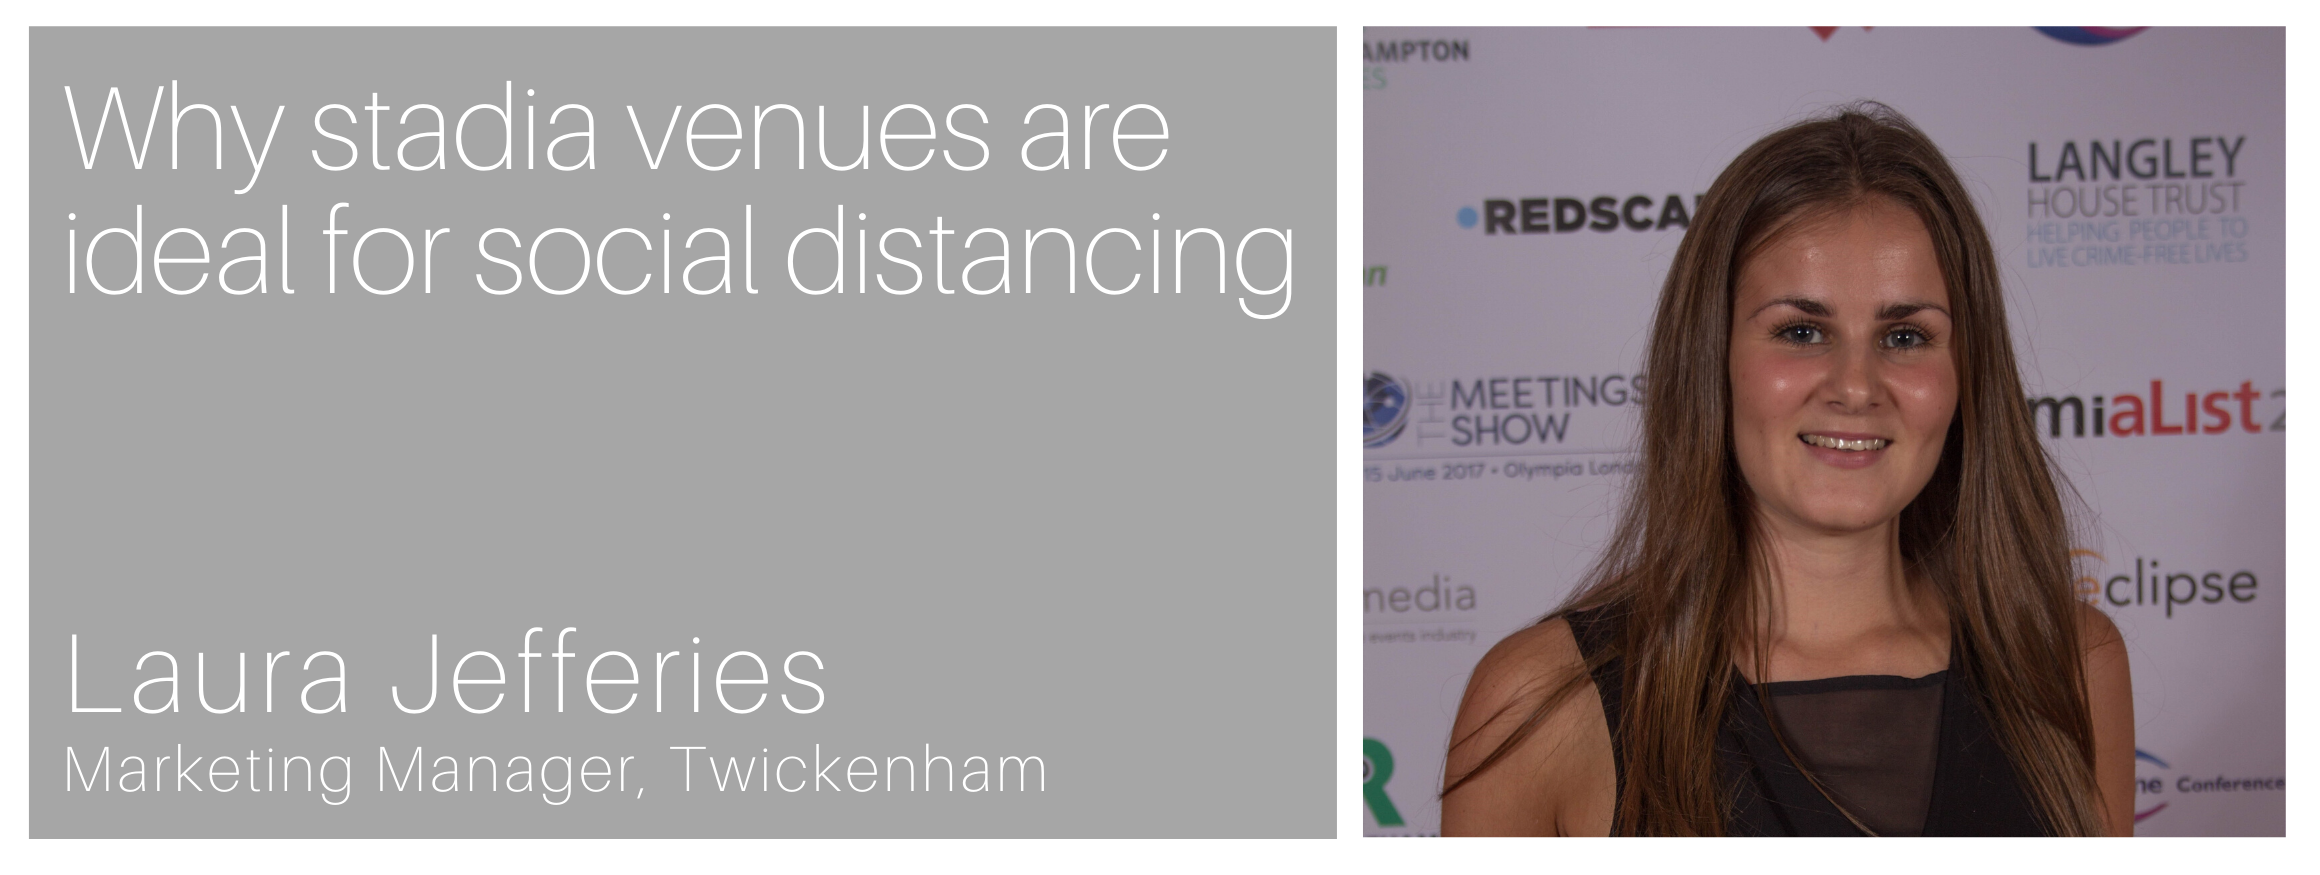 Why stadia venues are ideal for social distancing